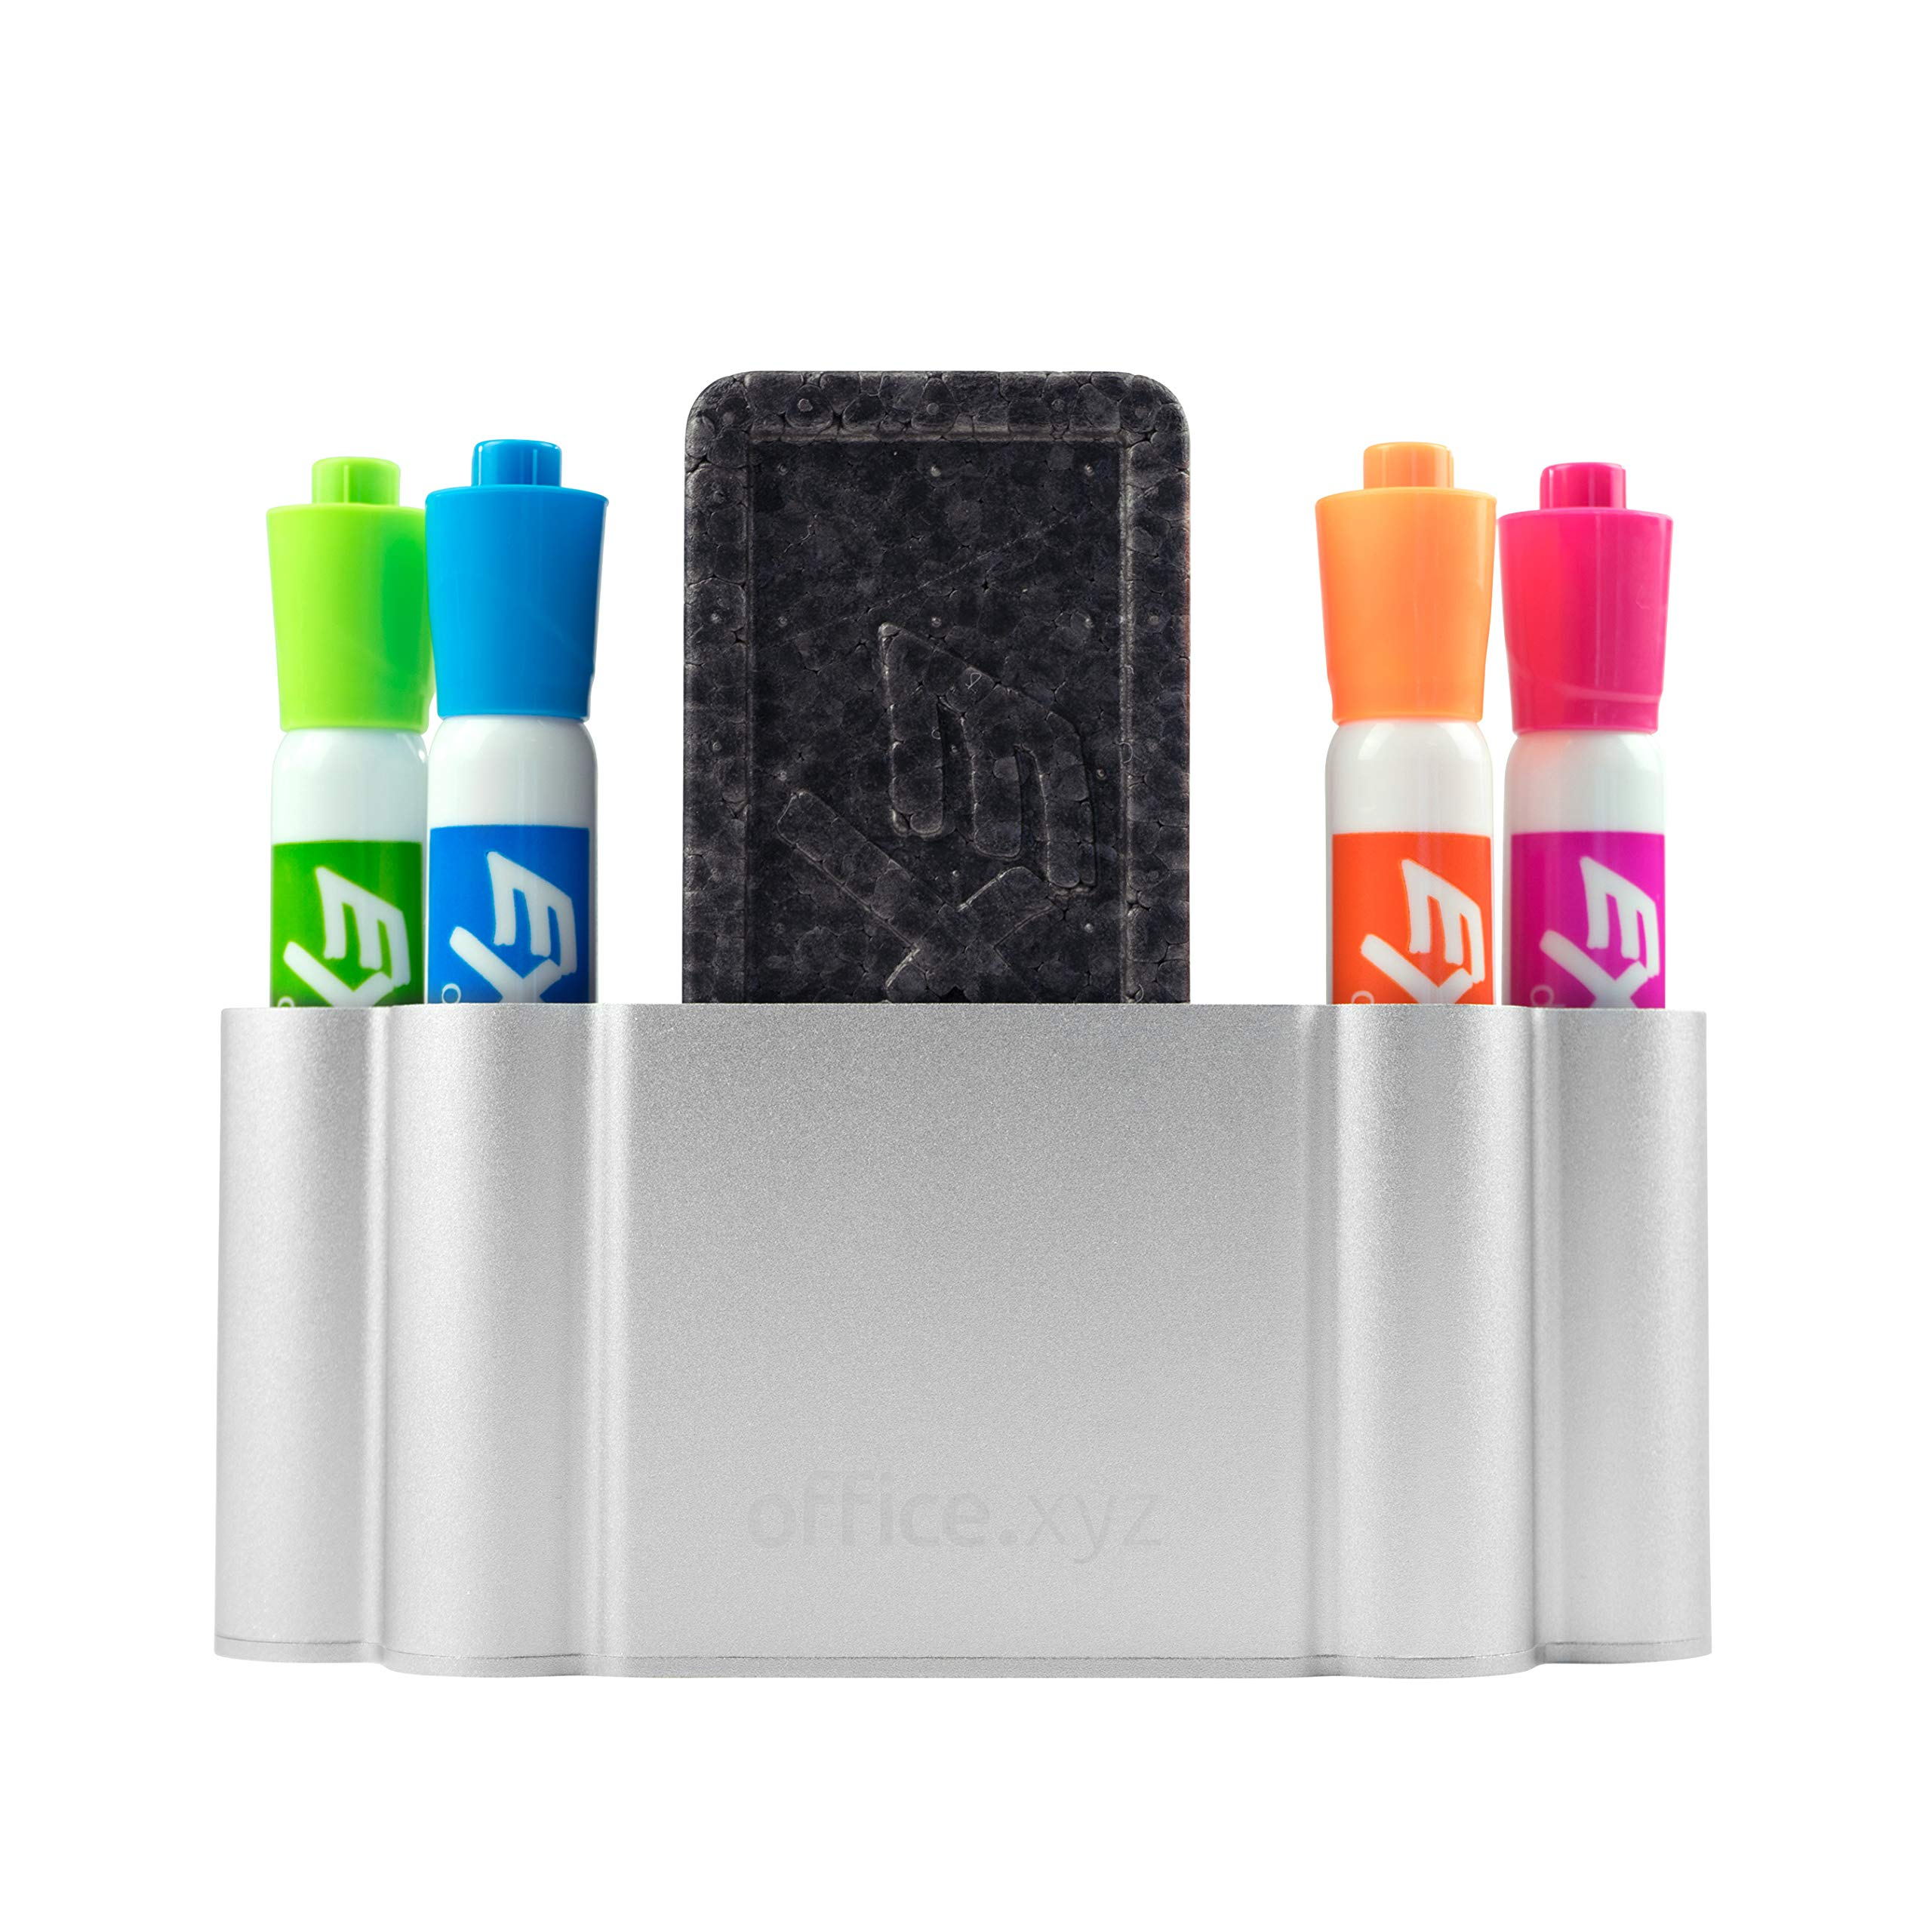 Dry Erase Board Magnetic Marker Holder for Glass or Any Whiteboards (Markers NOT Included) - Powerful Neodymium Magnets (Natural Aluminum) by Glassboard Studio